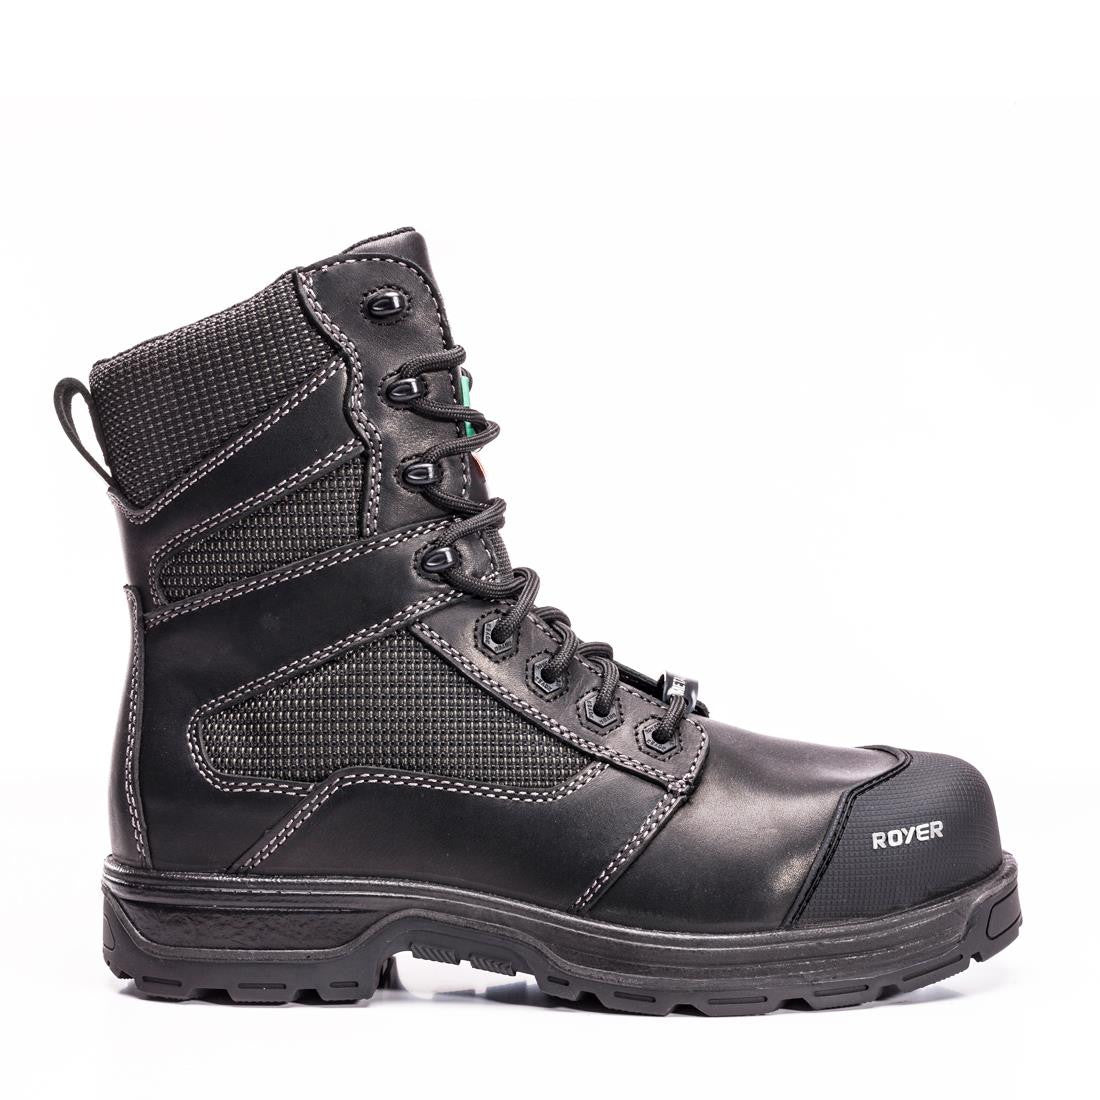 Royer 5705GT Airflow Waterproof Saftey Boot